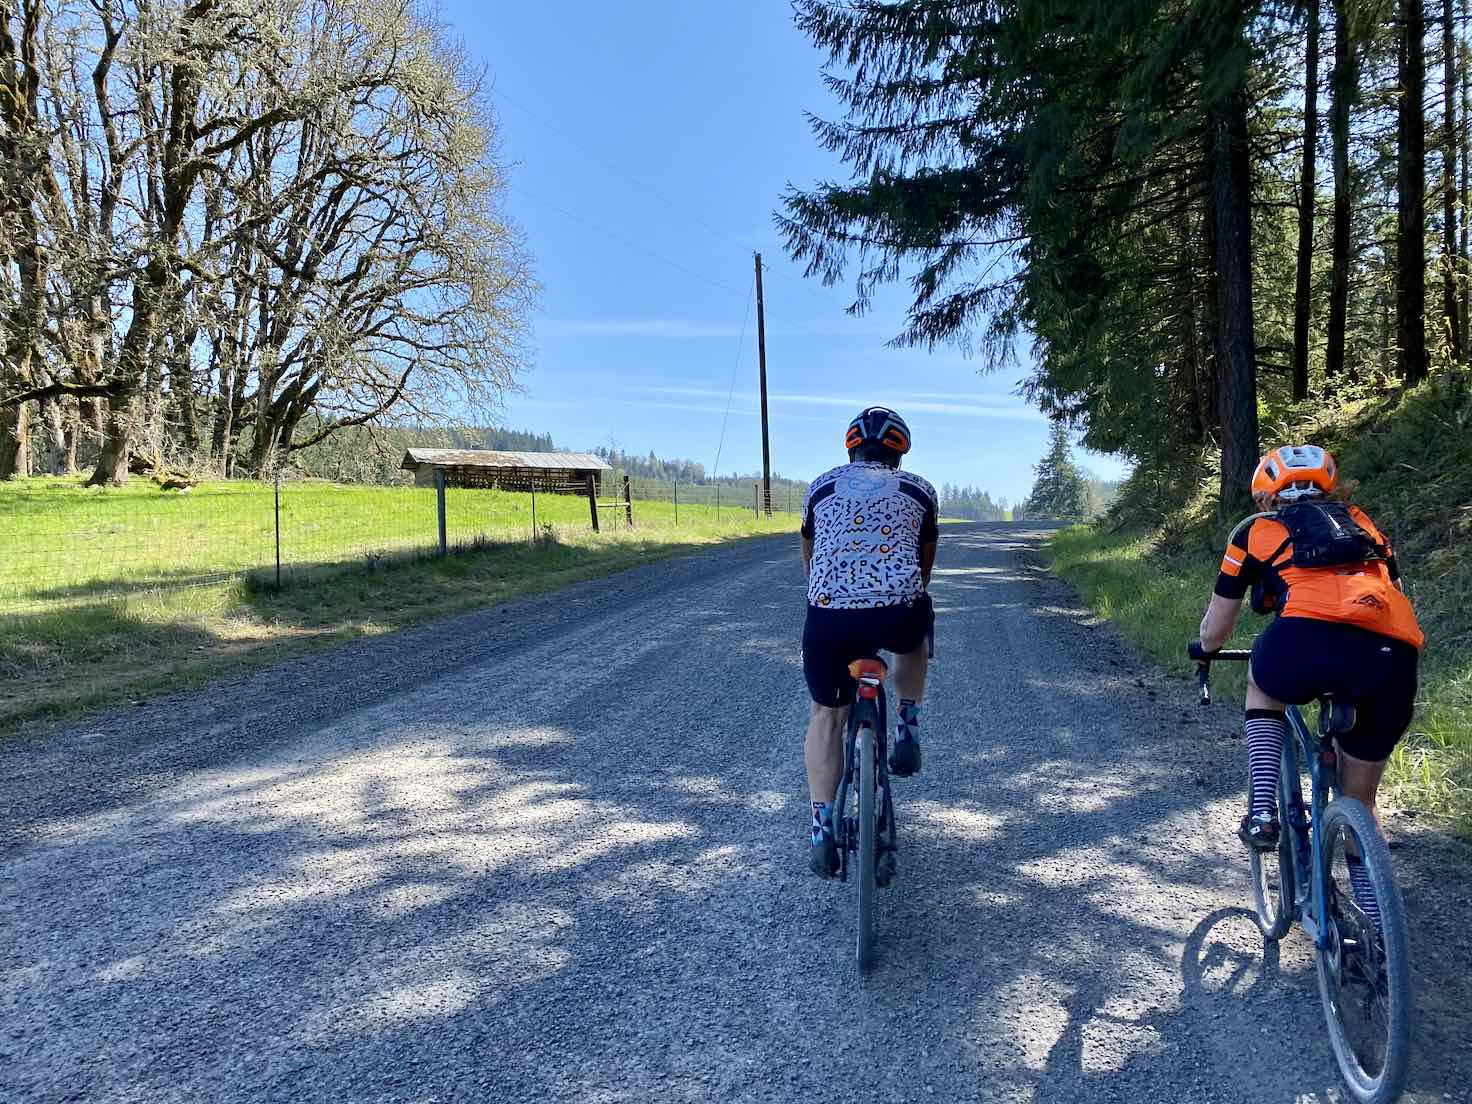 Gravel cyclists on road with slight incline and some trees.